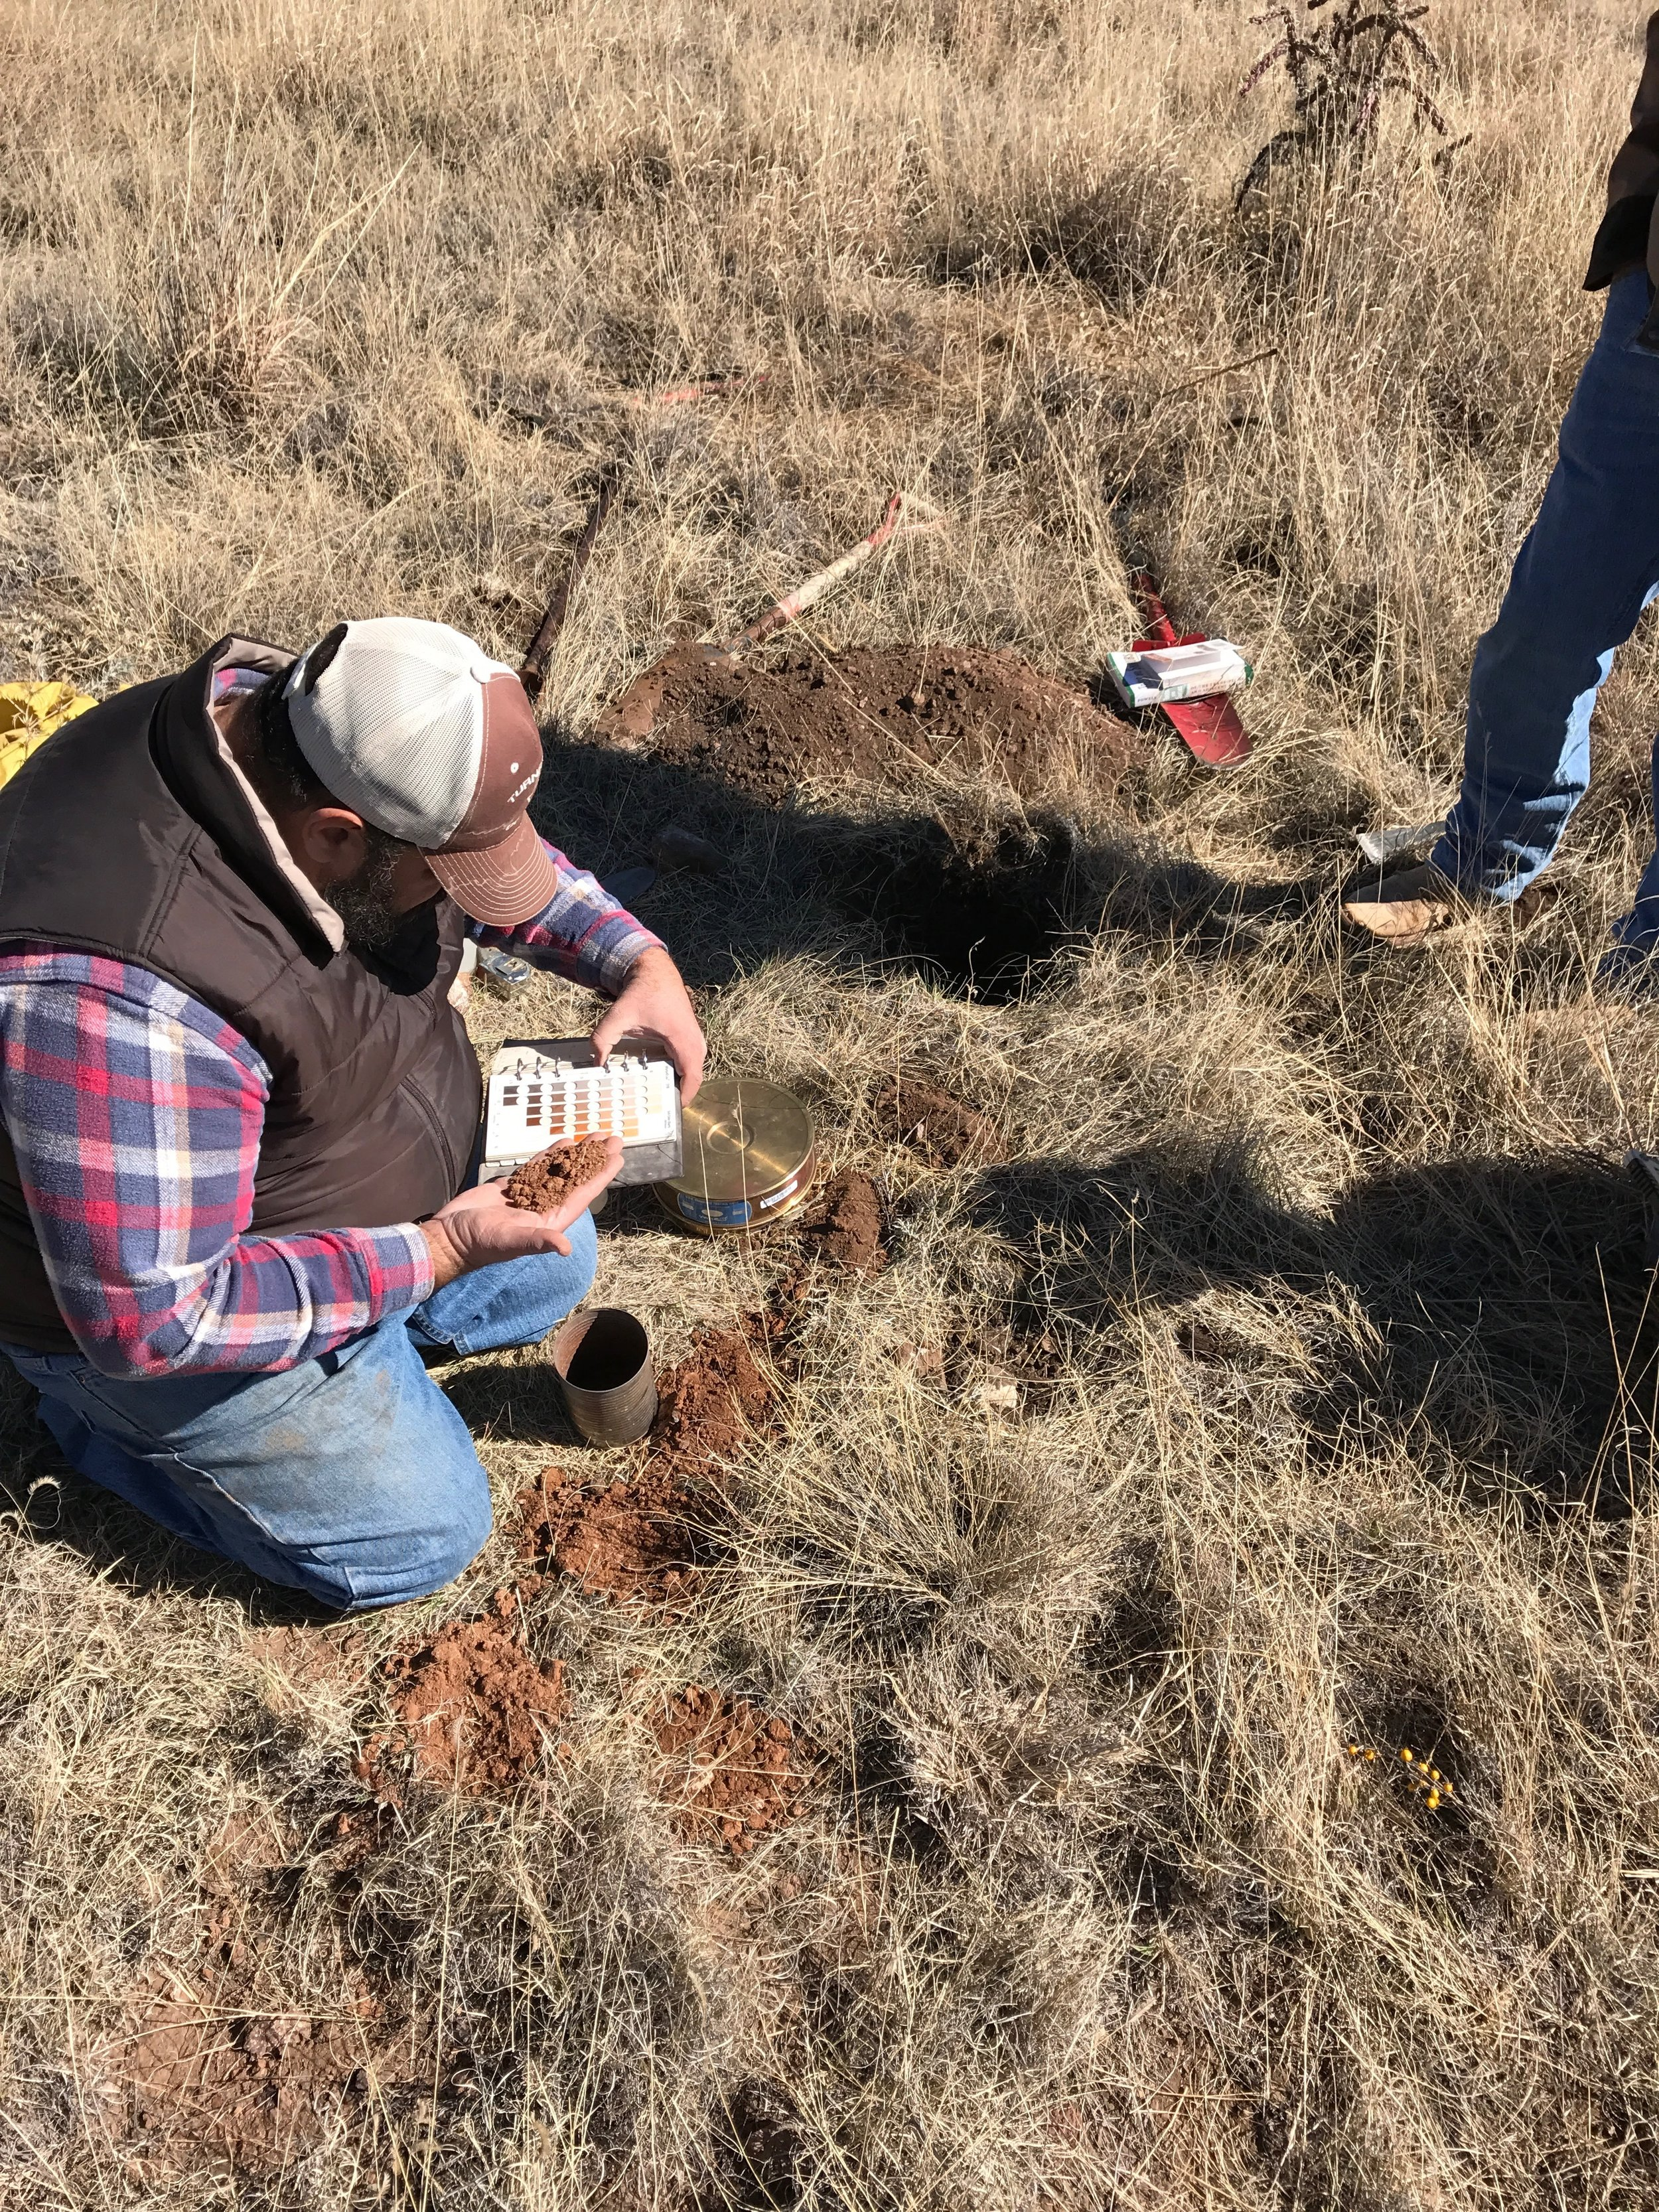 David Jalali, soil scientist from the NRCS in Marfa, classifying soil color.